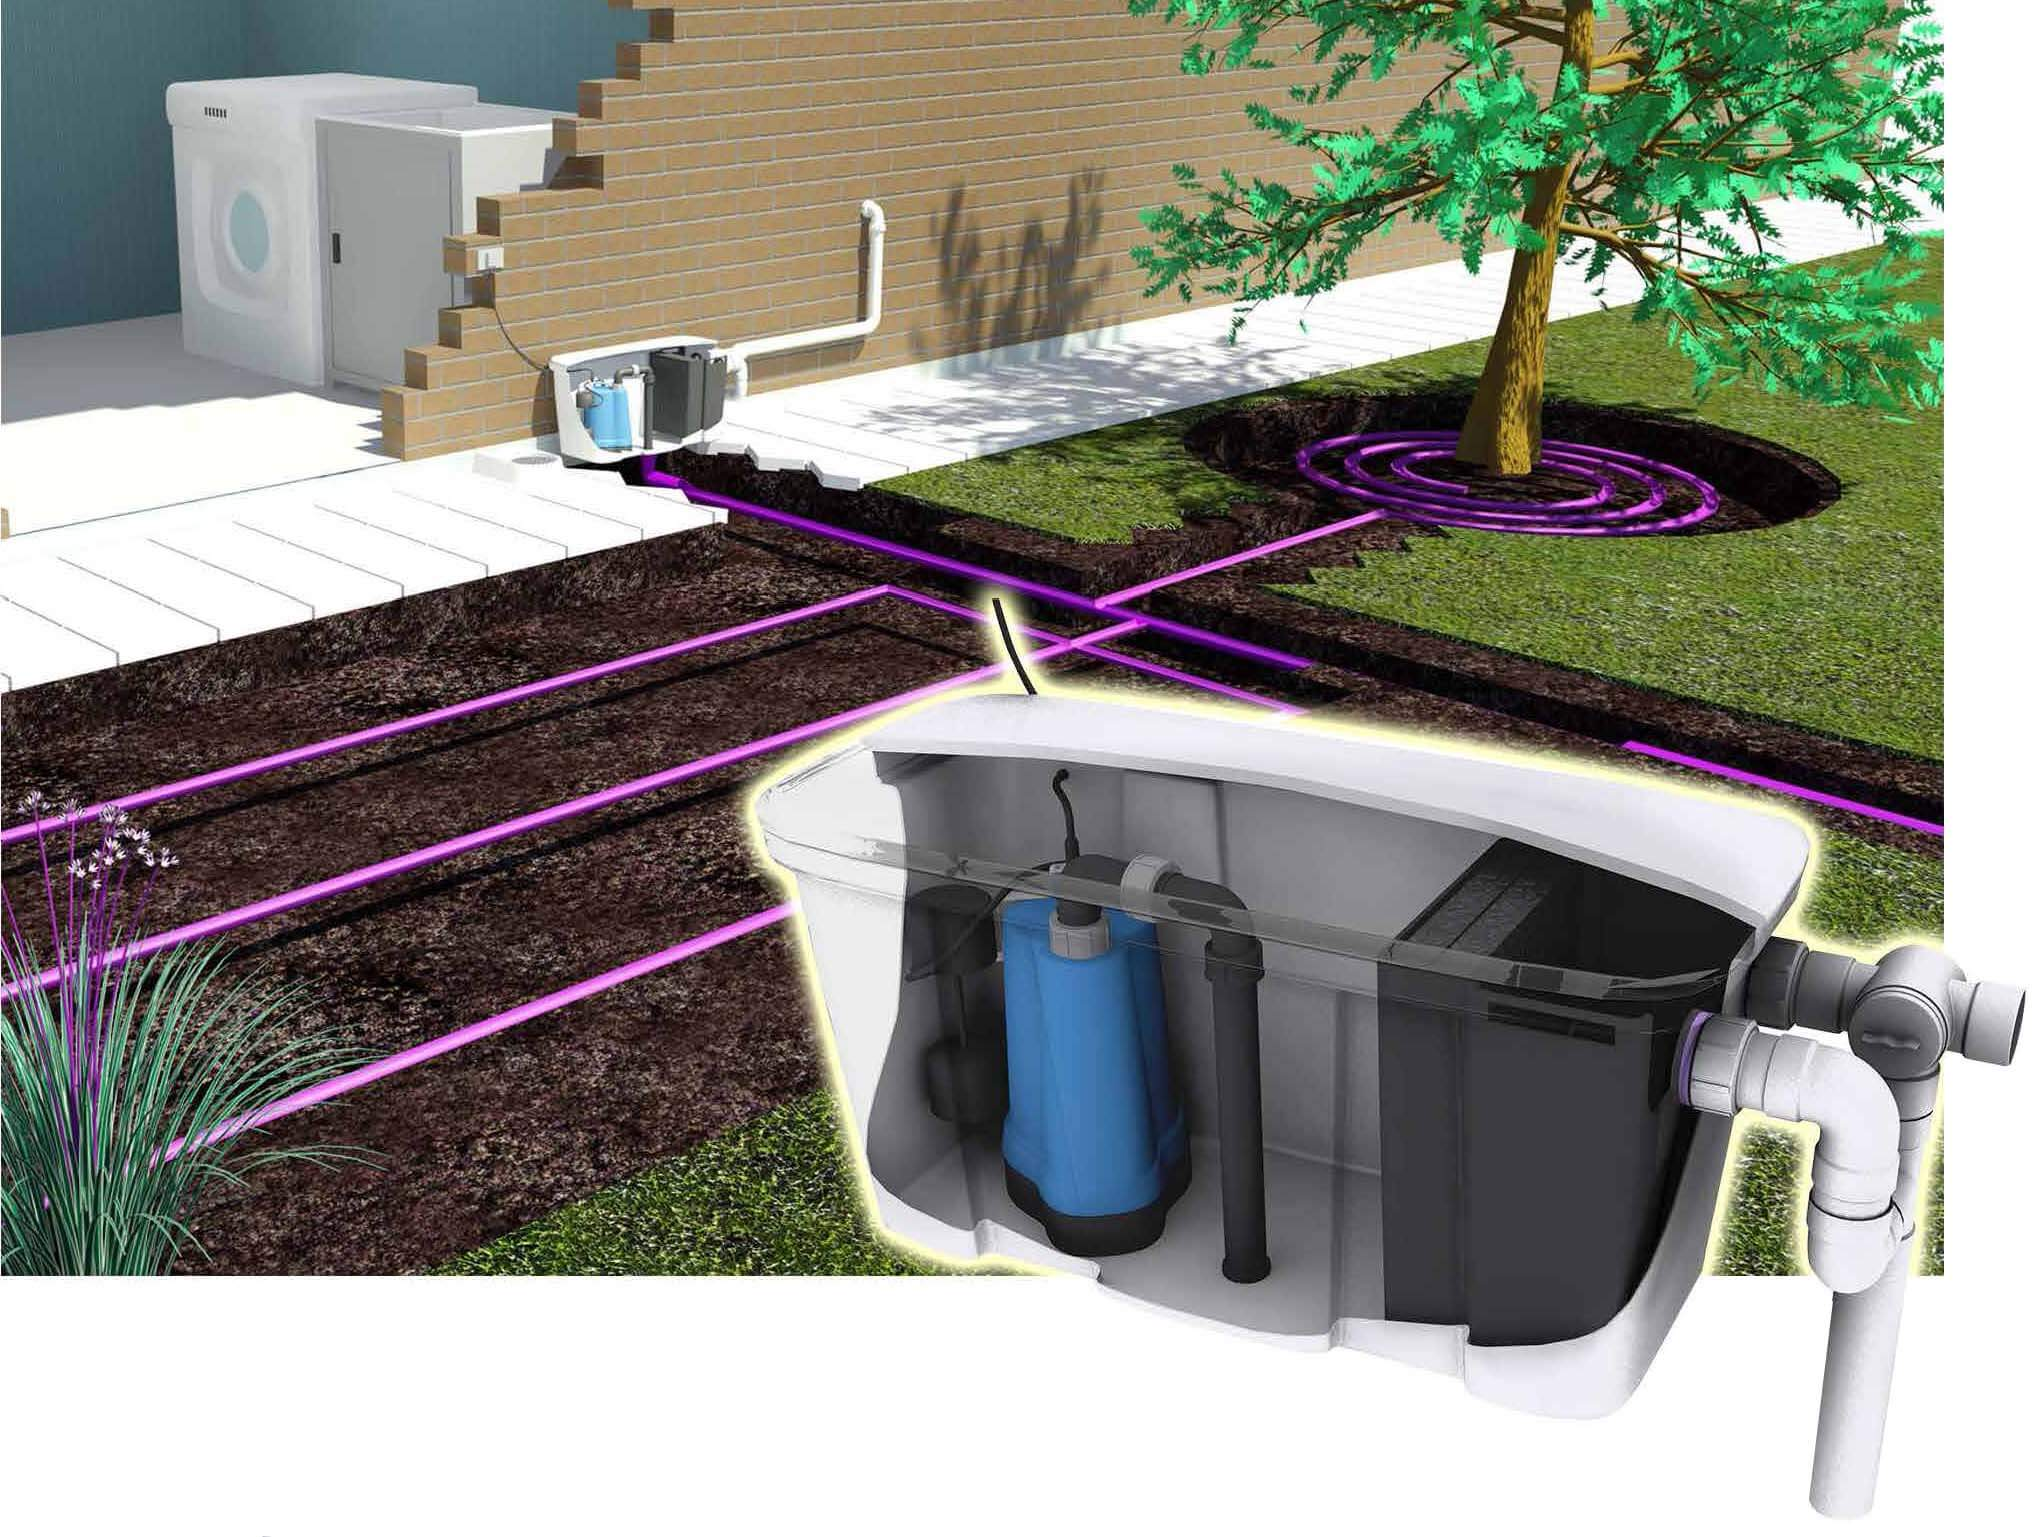 G-Flow grey water system diverting laundry water onto garden with drip irrigation